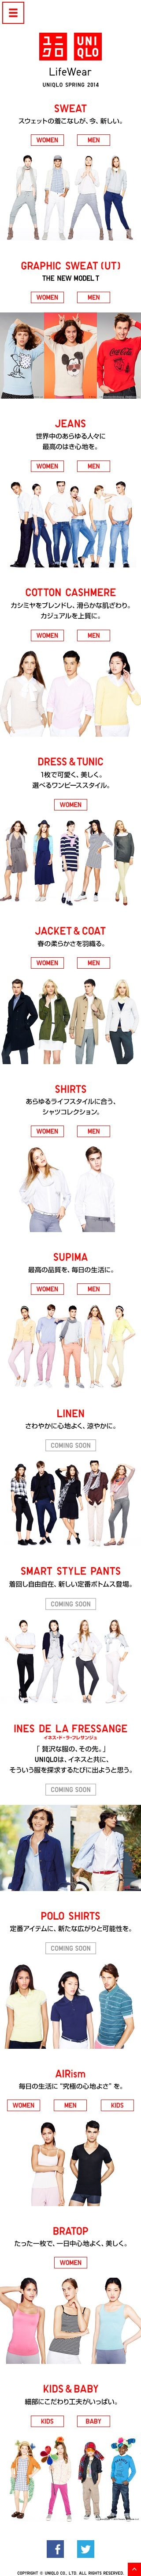 http://www.uniqlo.com/jp/2014_lifewear_collection/sp/